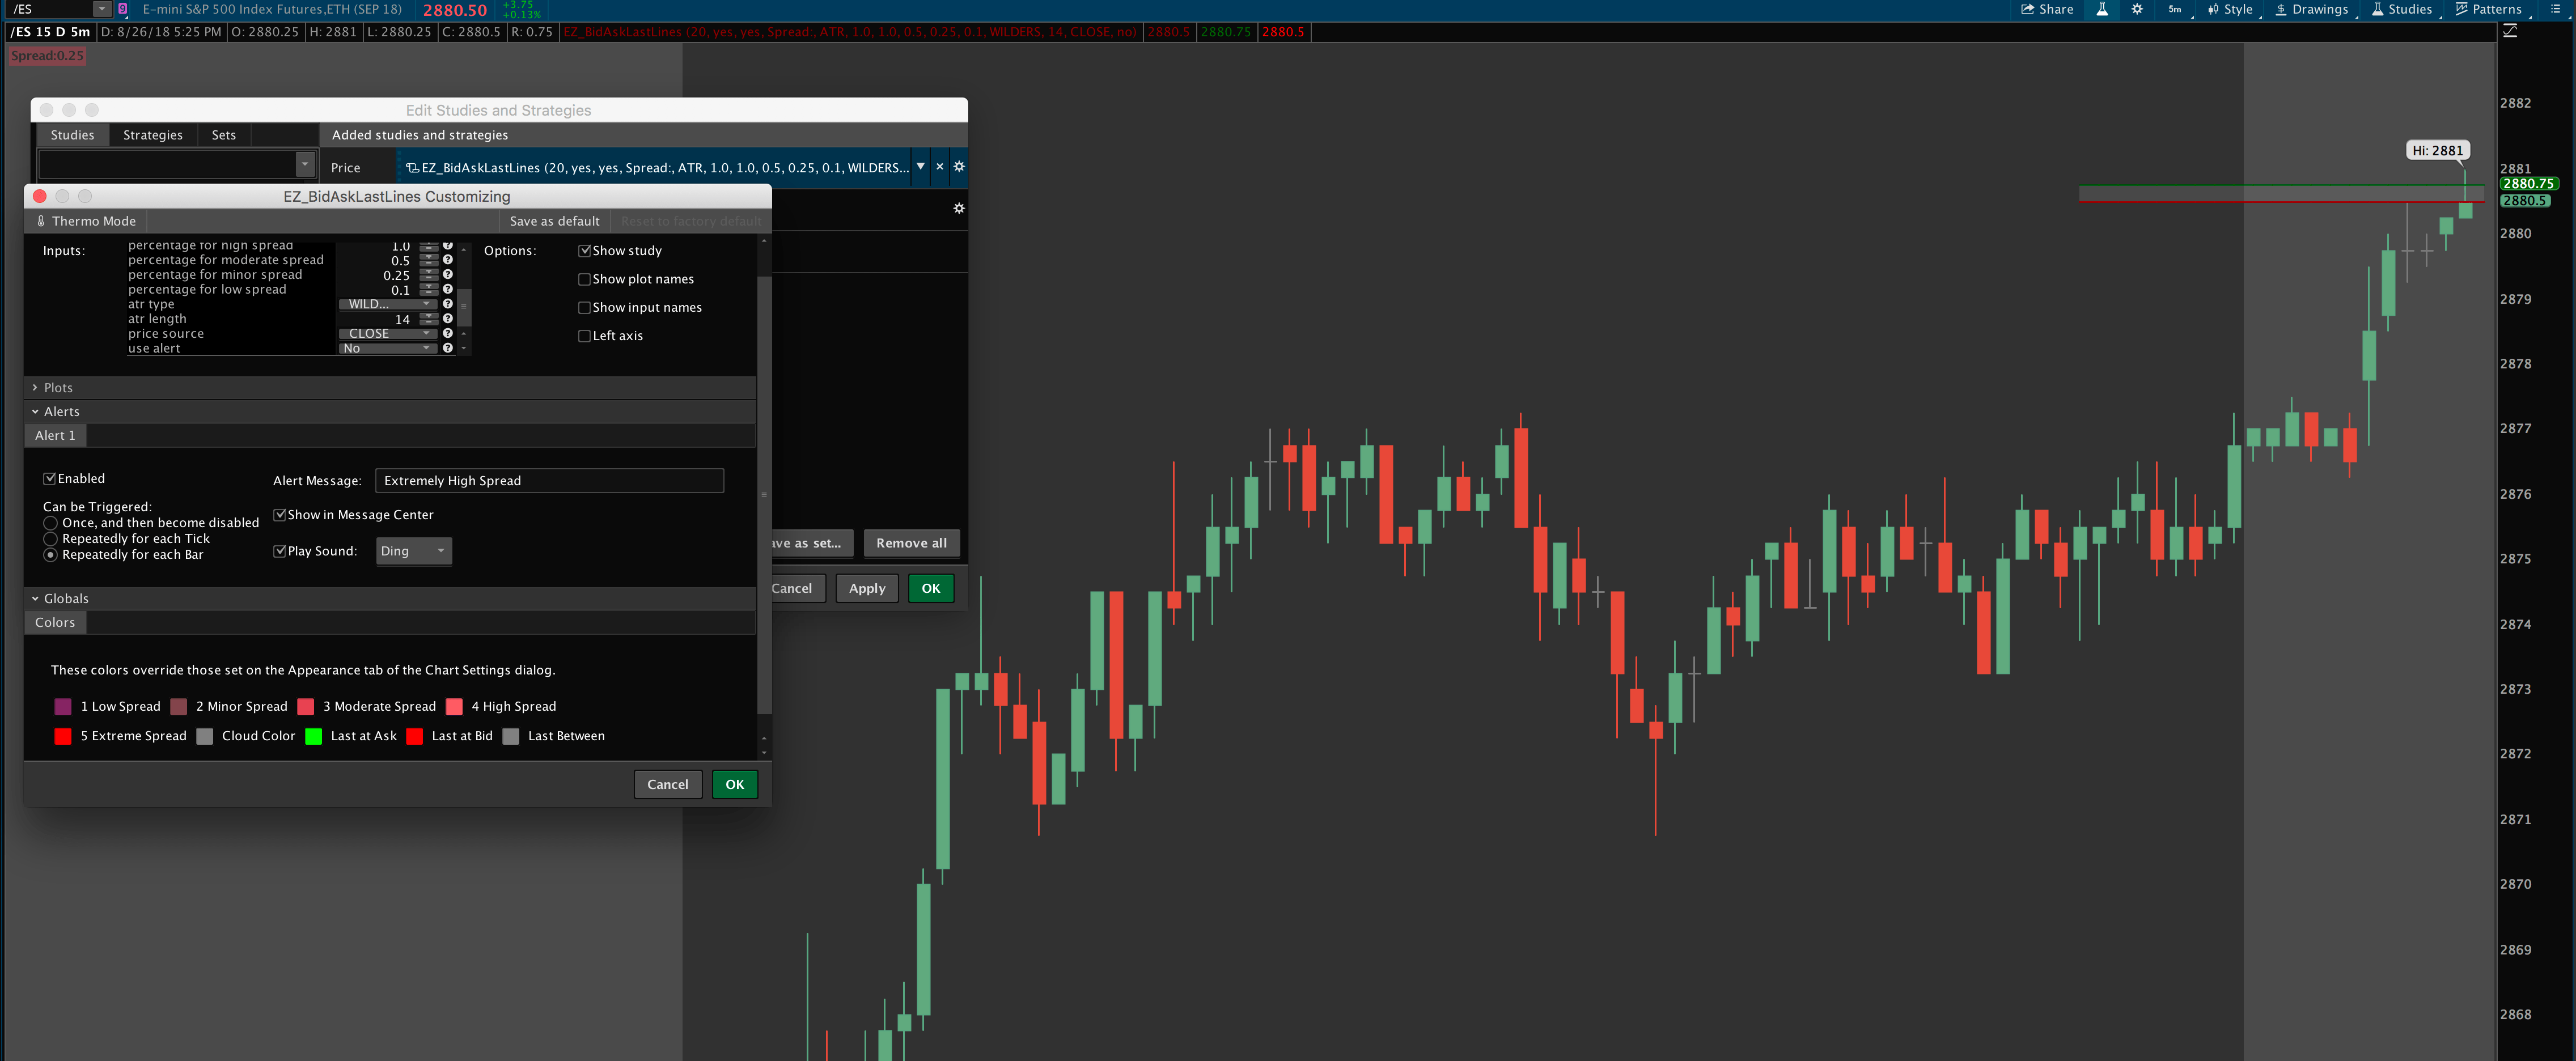 Thinkorswim Bid-Ask Spread Lines Indicator for Stocks, Futures and Forex